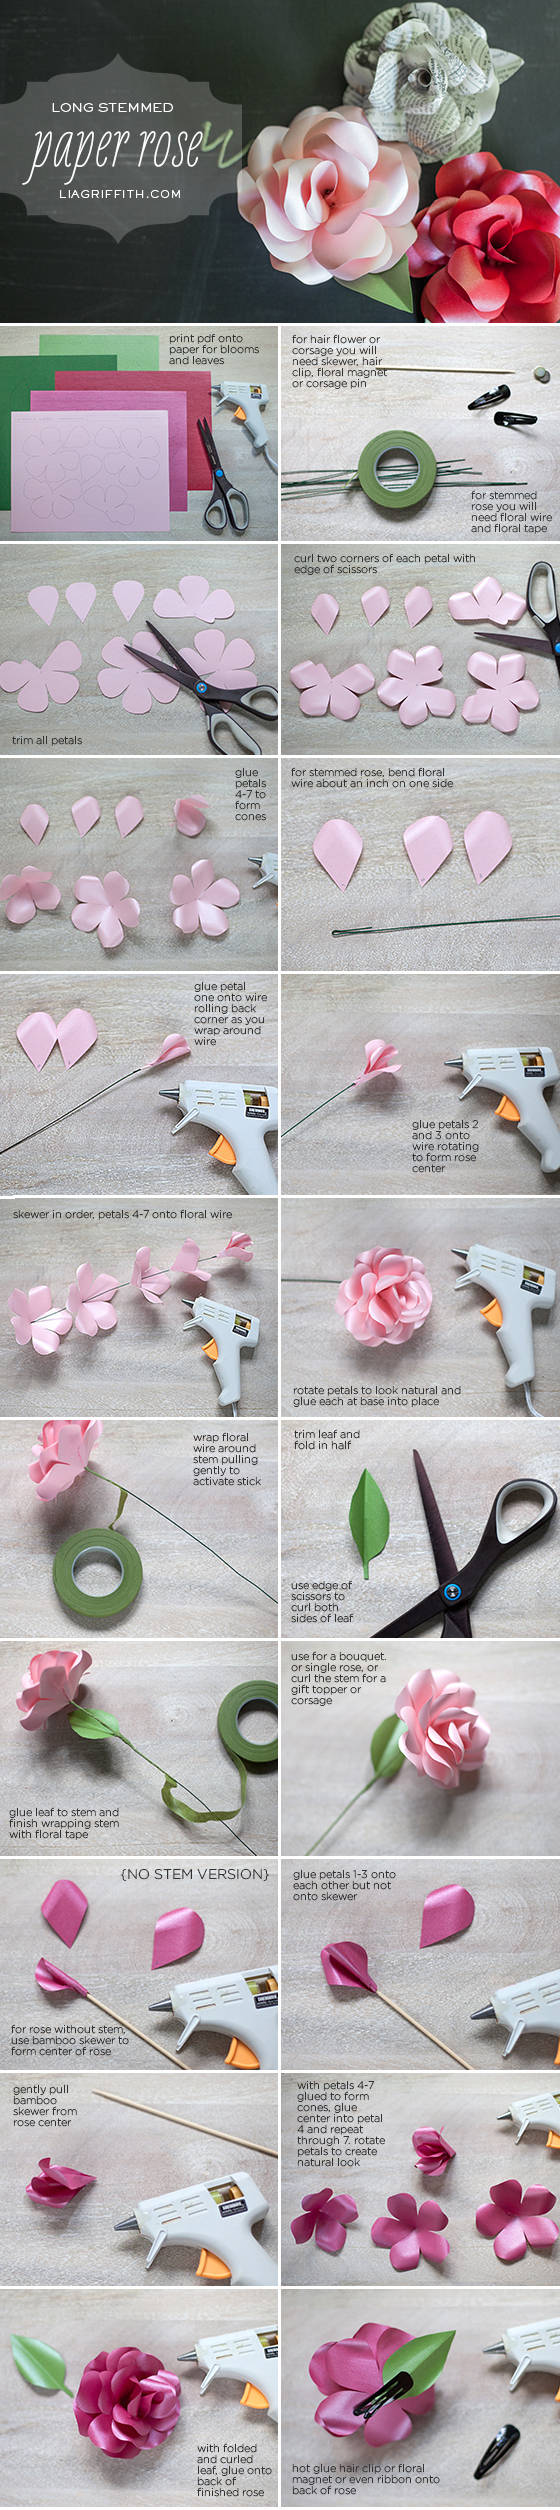 DIY Long Stemmed Paper Rose